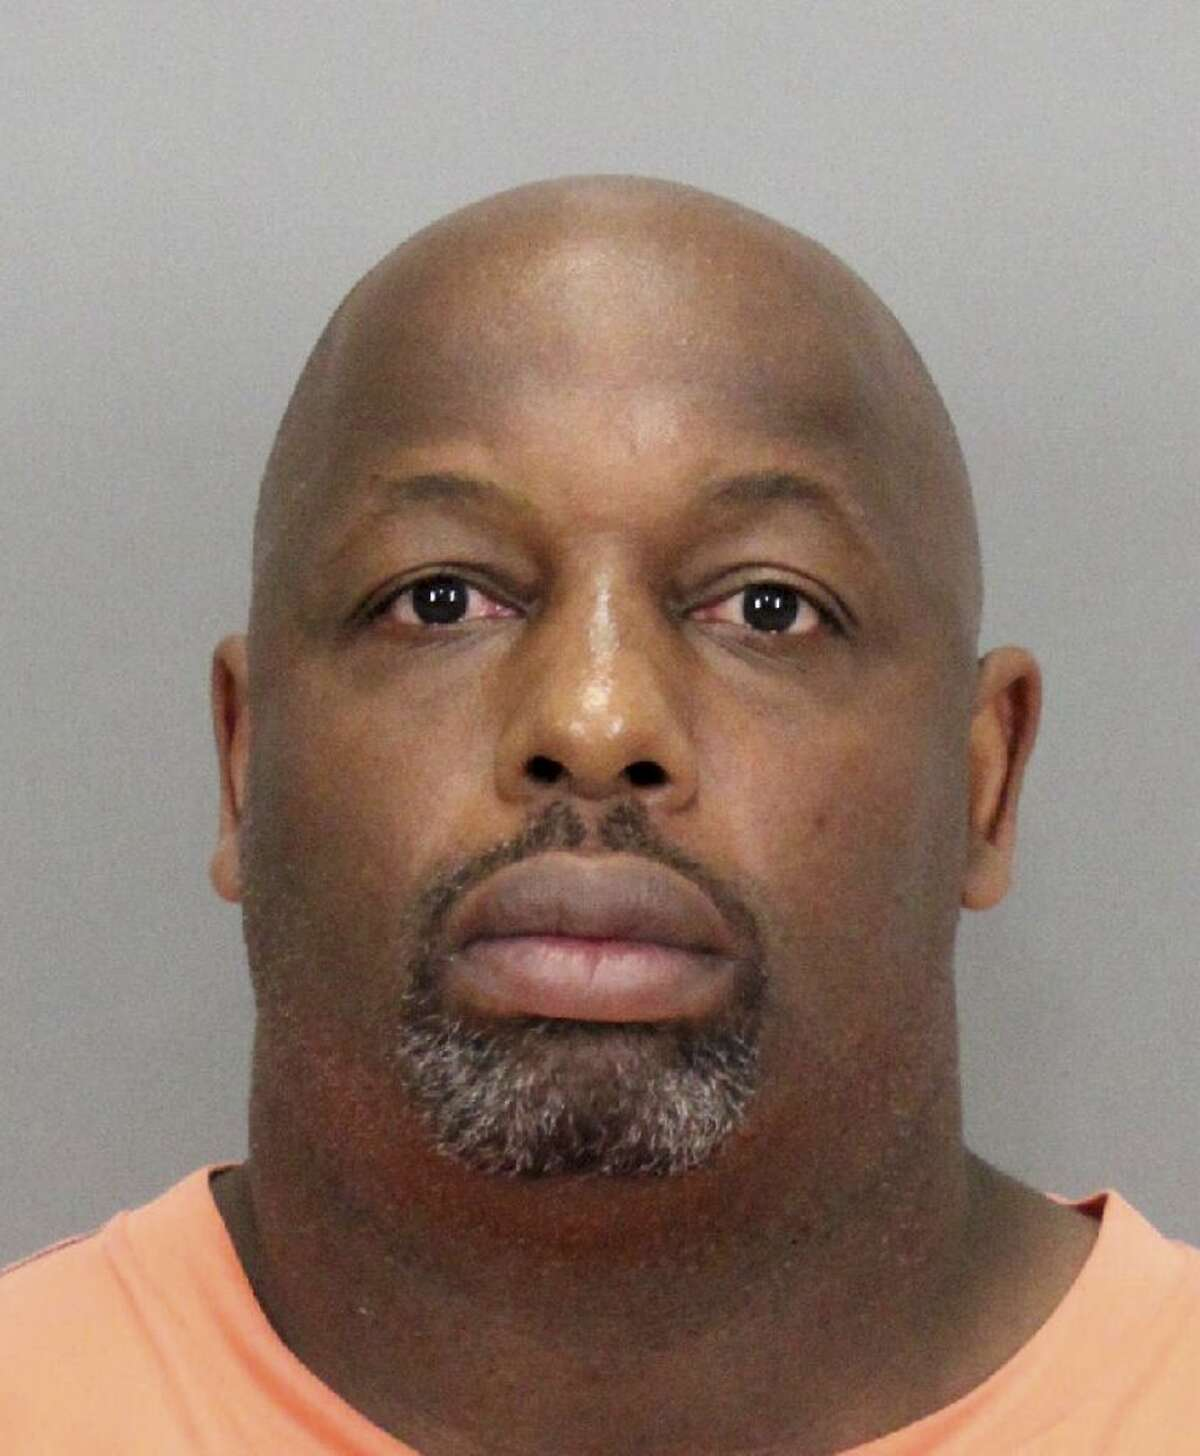 """In this undated booking photo released by the Santa Clara County District Attorney is former NFL football player Dana Stubblefield. Prosecutors say they have charged former San Francisco 49er Dana Stubblefield with the rape of a """"developmentally delayed"""" woman. The Santa Clara County District Attorney's Office says the 45-year-old Stubblefield was charged Monday, May 2, 2016, with sexually assaulting the woman last year at his Morgan Hill home. (Santa Clara County District Attorney via AP)"""